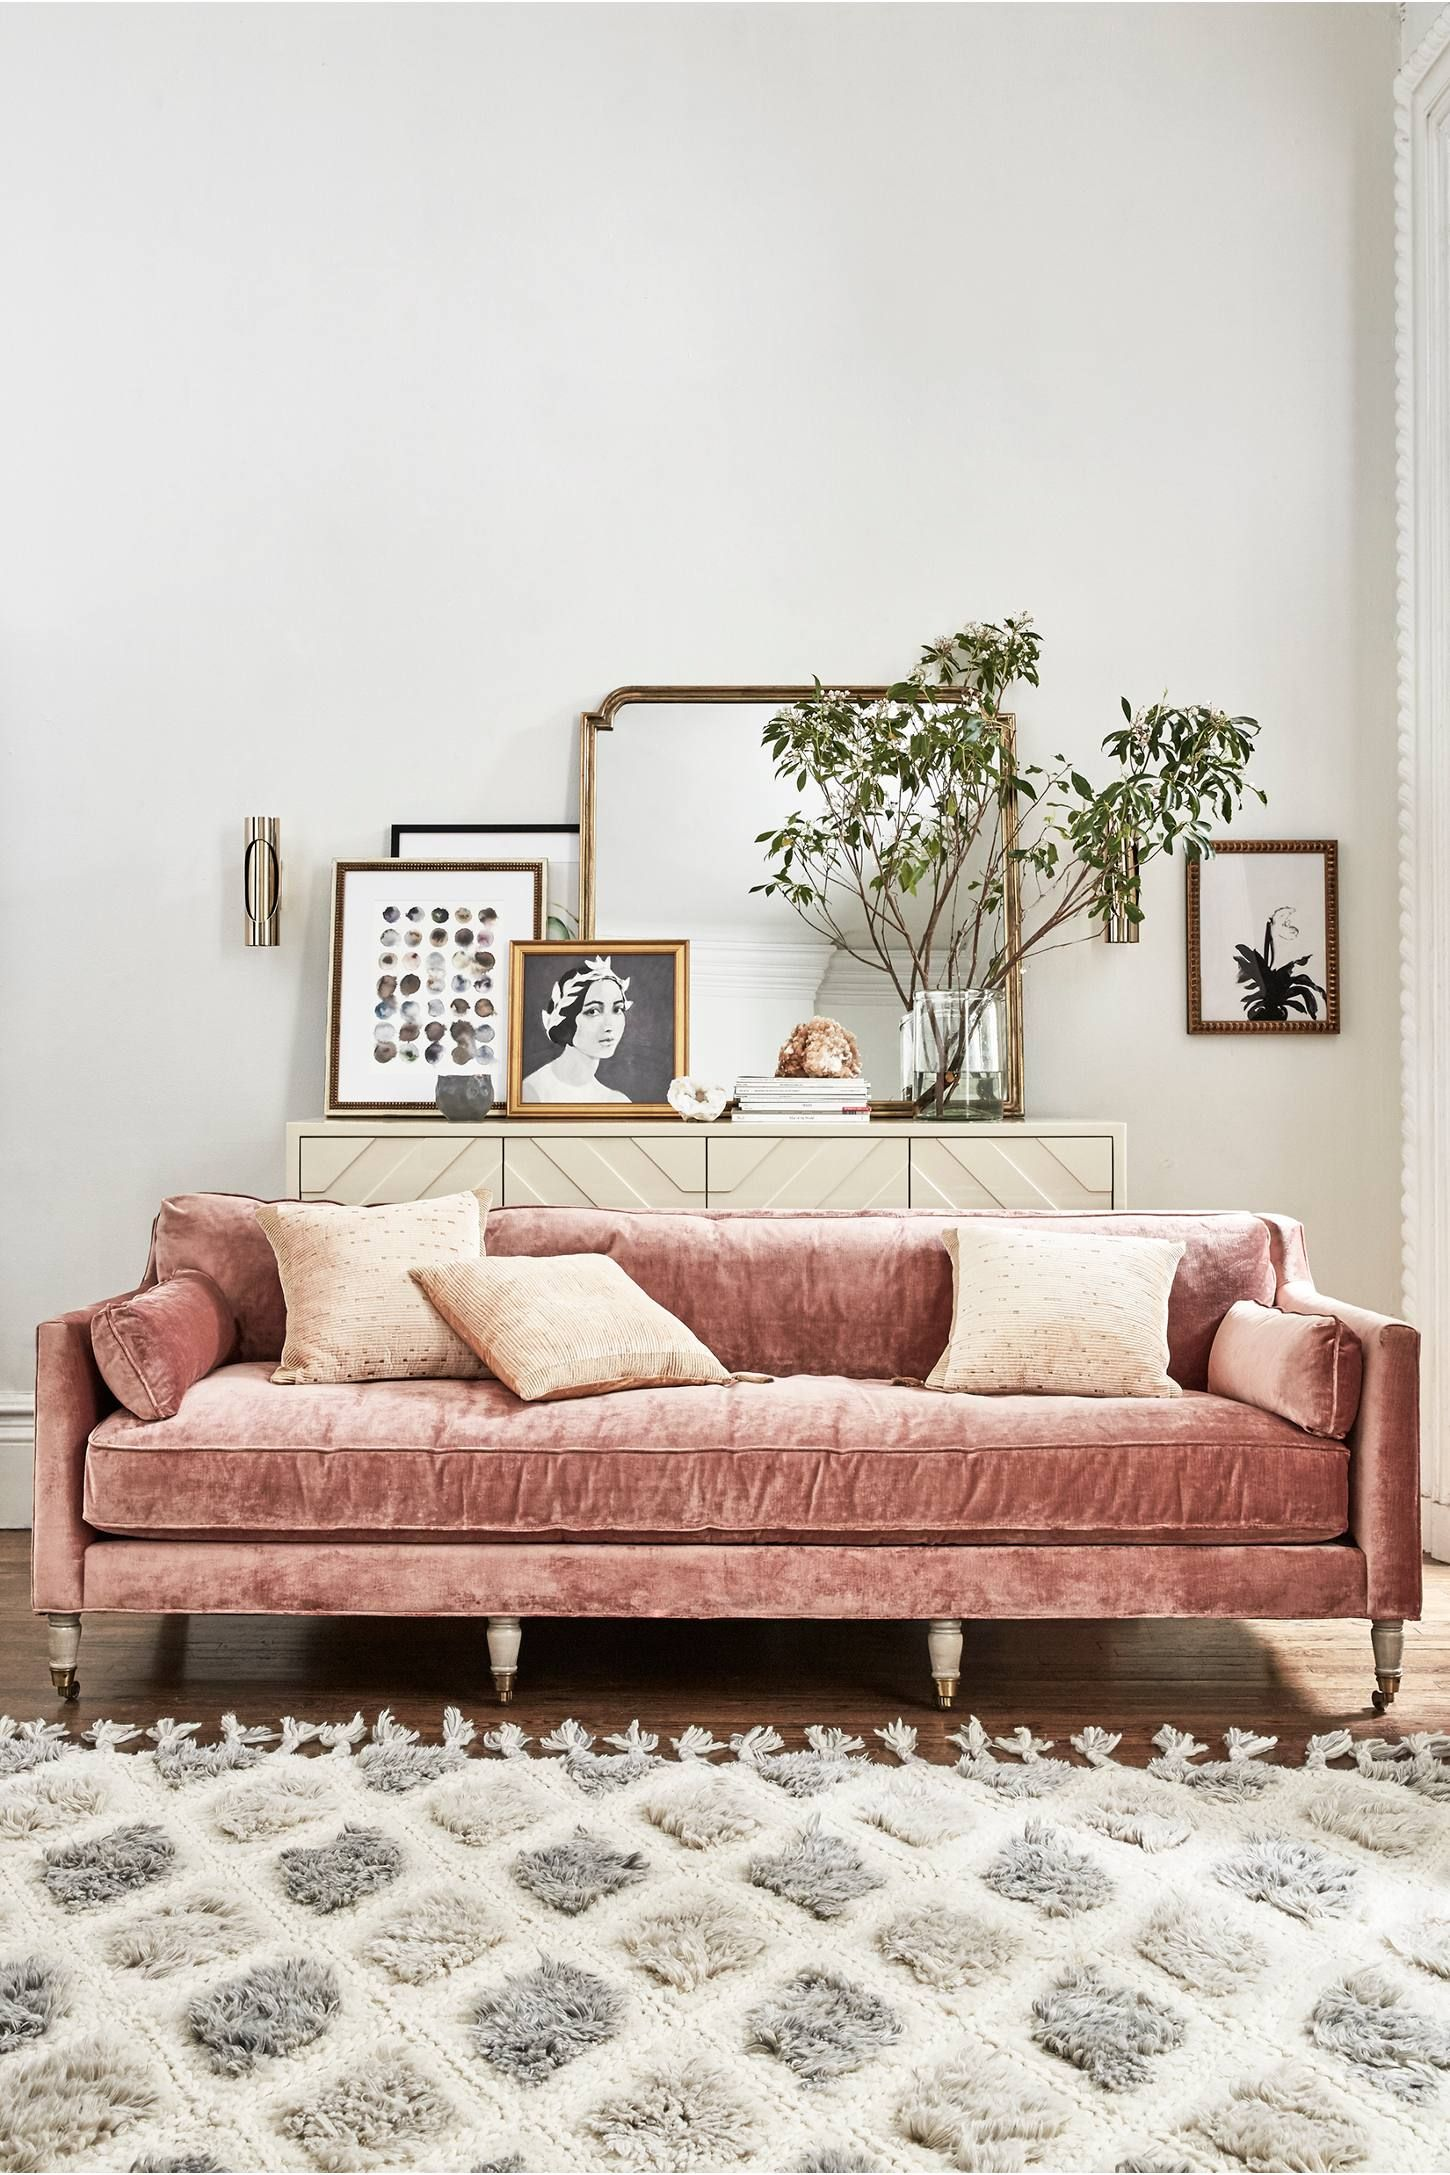 Sofa And More Modular Sofas For Small Spaces Slub Velvet Leonelle Pinterest Pink Shop The Anthropologie At Today Read Customer Reviews Discover Product Details